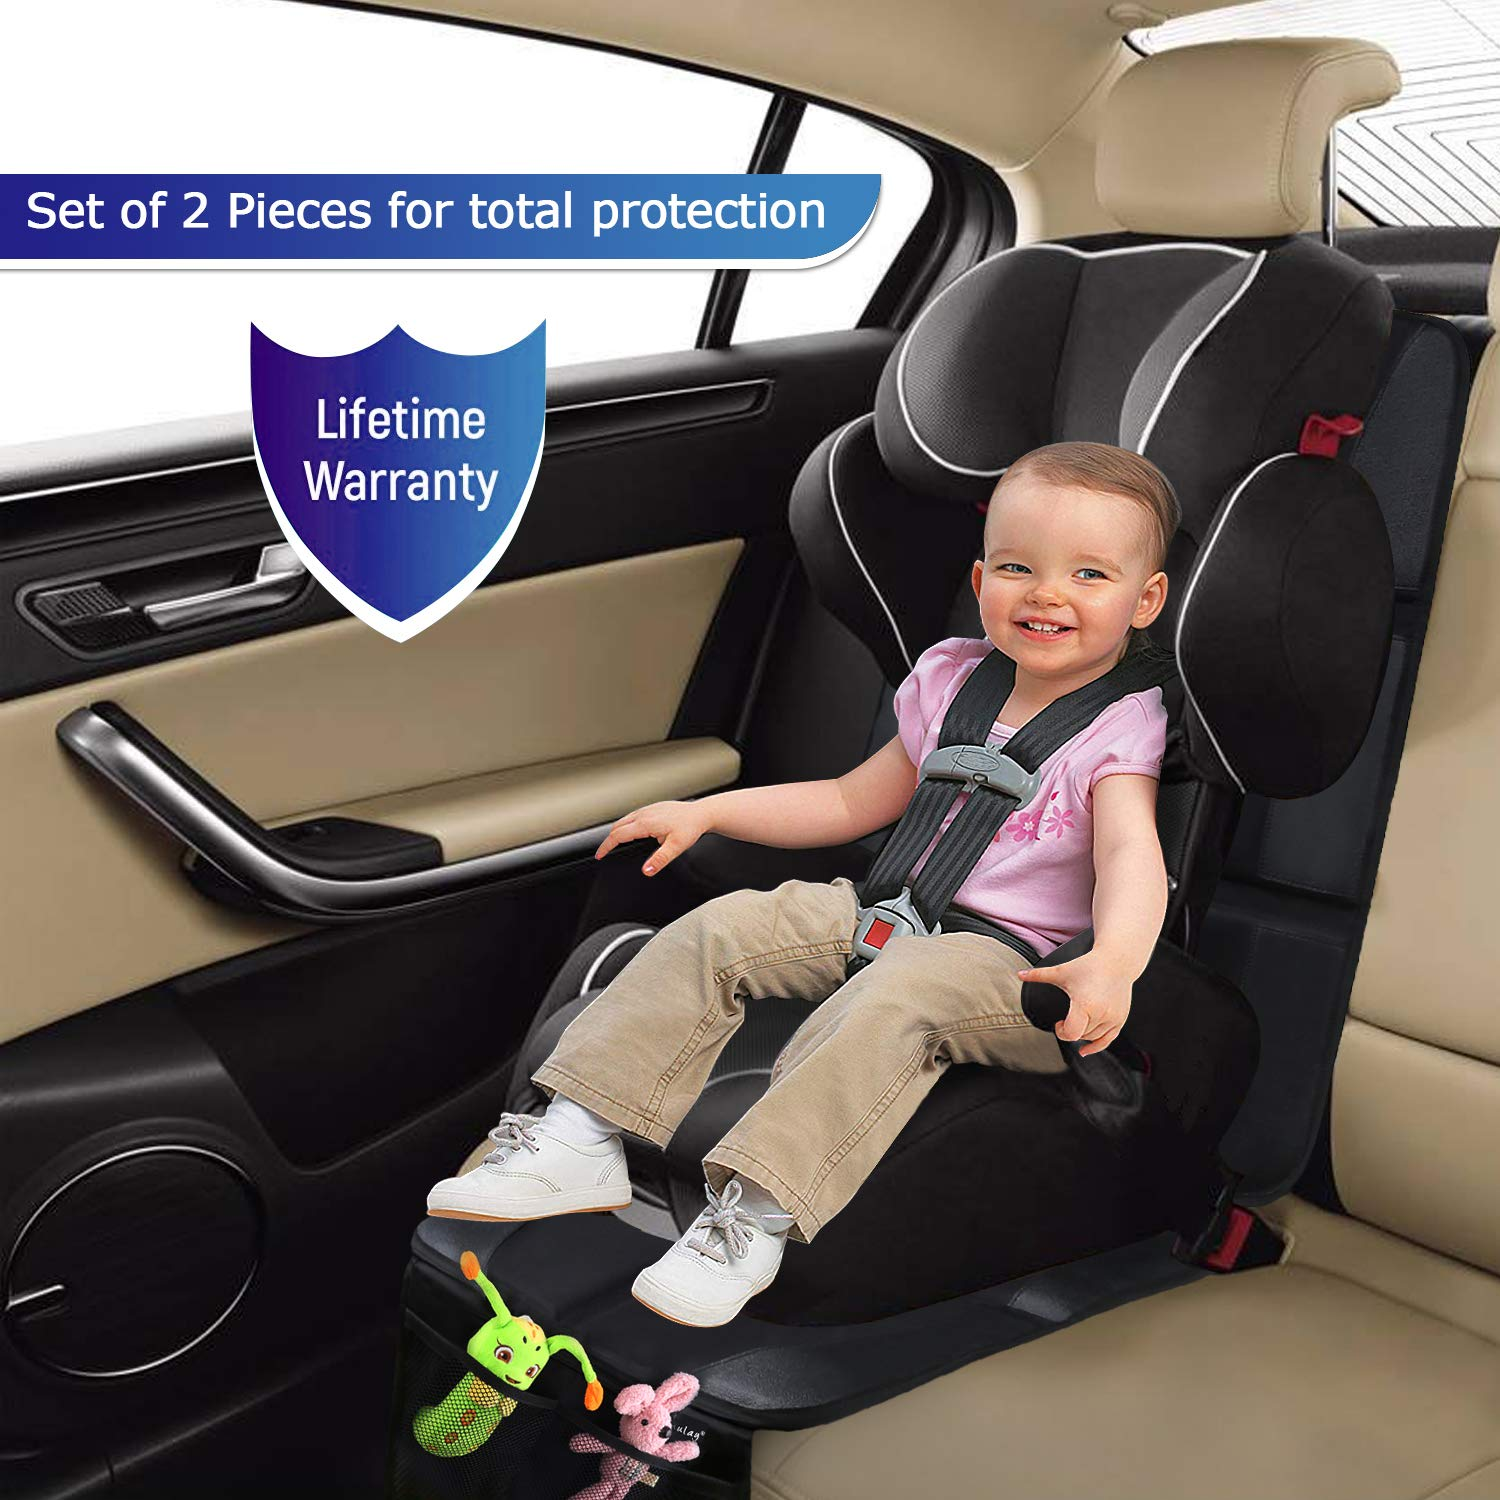 Large Auto Car Seat Protectors for Child /& Baby Car Seats Thick Padding Waterproof Baby Car Seat Protector for Leather Seats Vehicle SUV Sedan Leather Seats Dog Mat Cover Pads Car Seat Protector